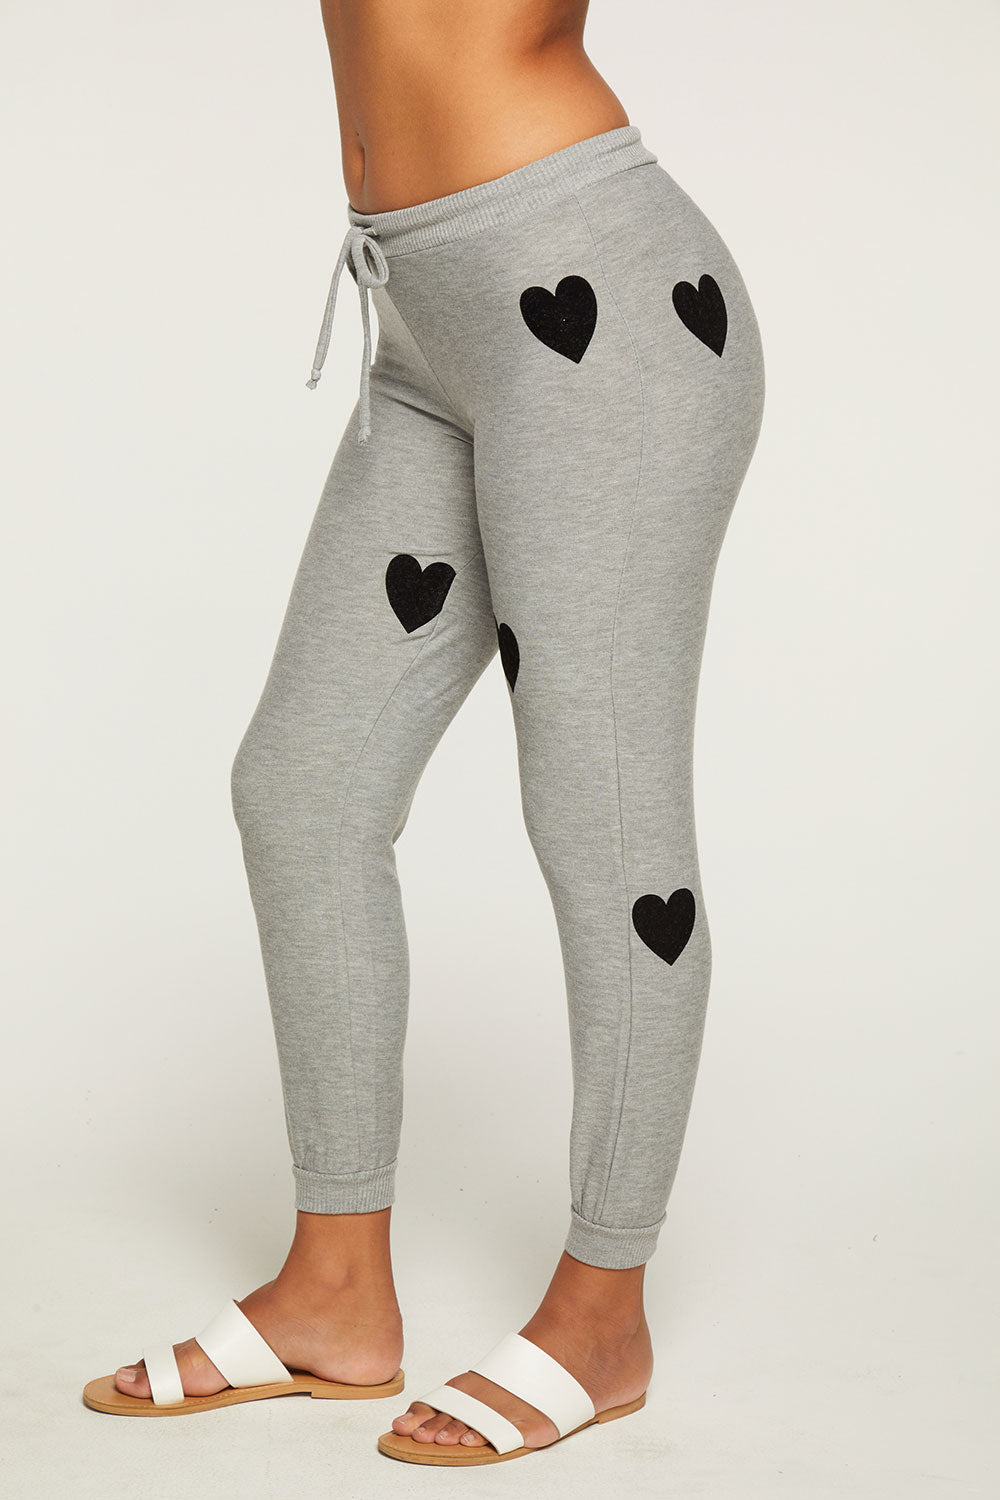 Flocked Hearts Pants WOMENS - chaserbrand